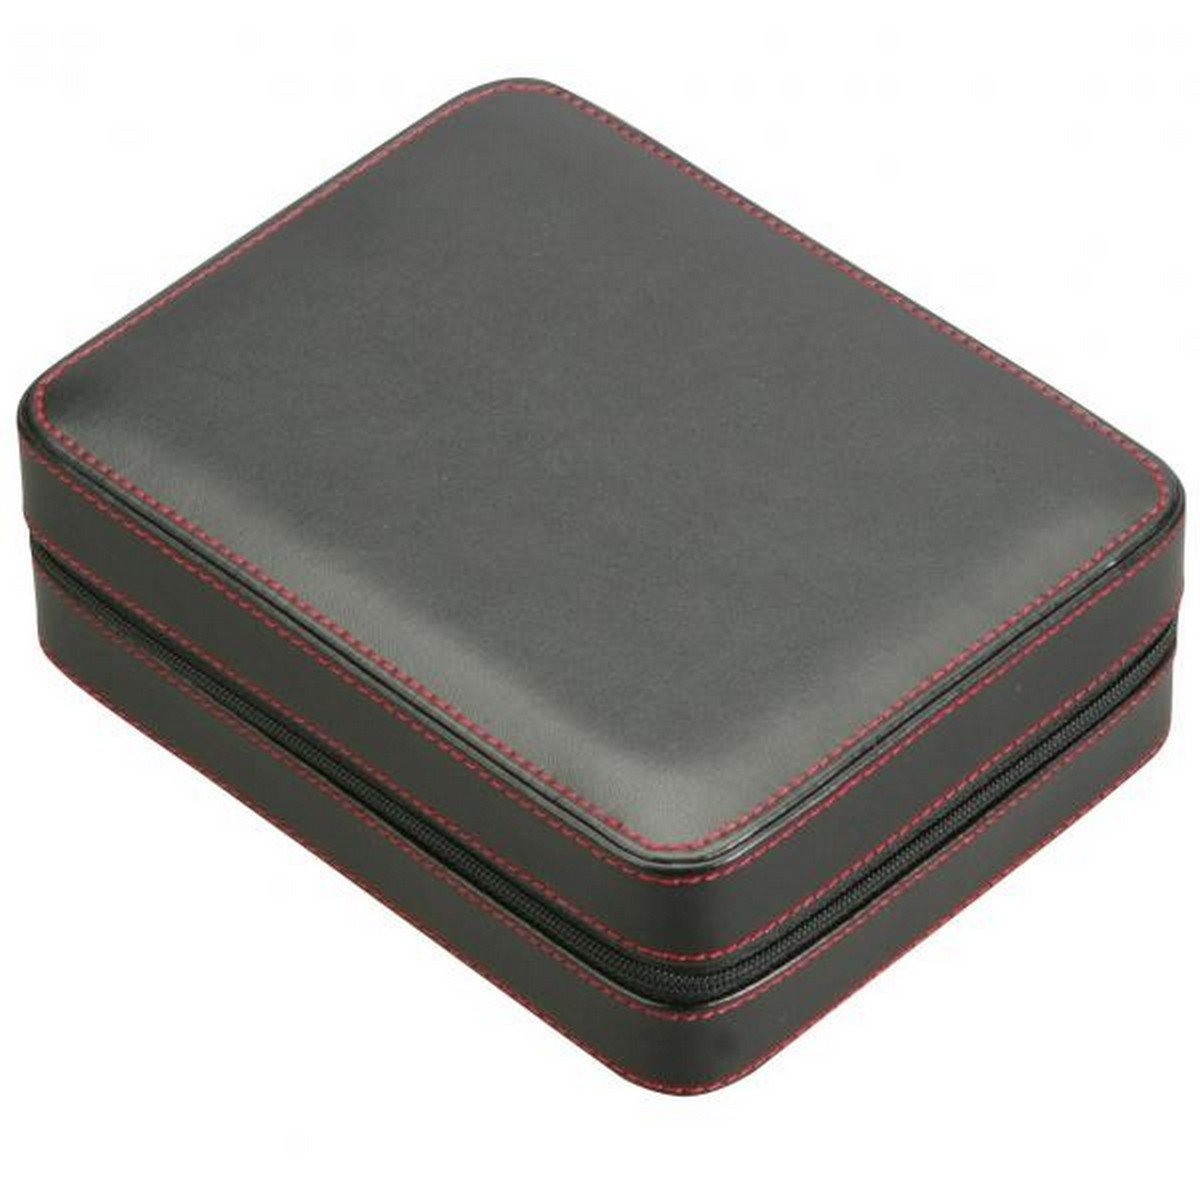 Four Watch Travel Case Pouch in Black Leather w/ Red Stitching